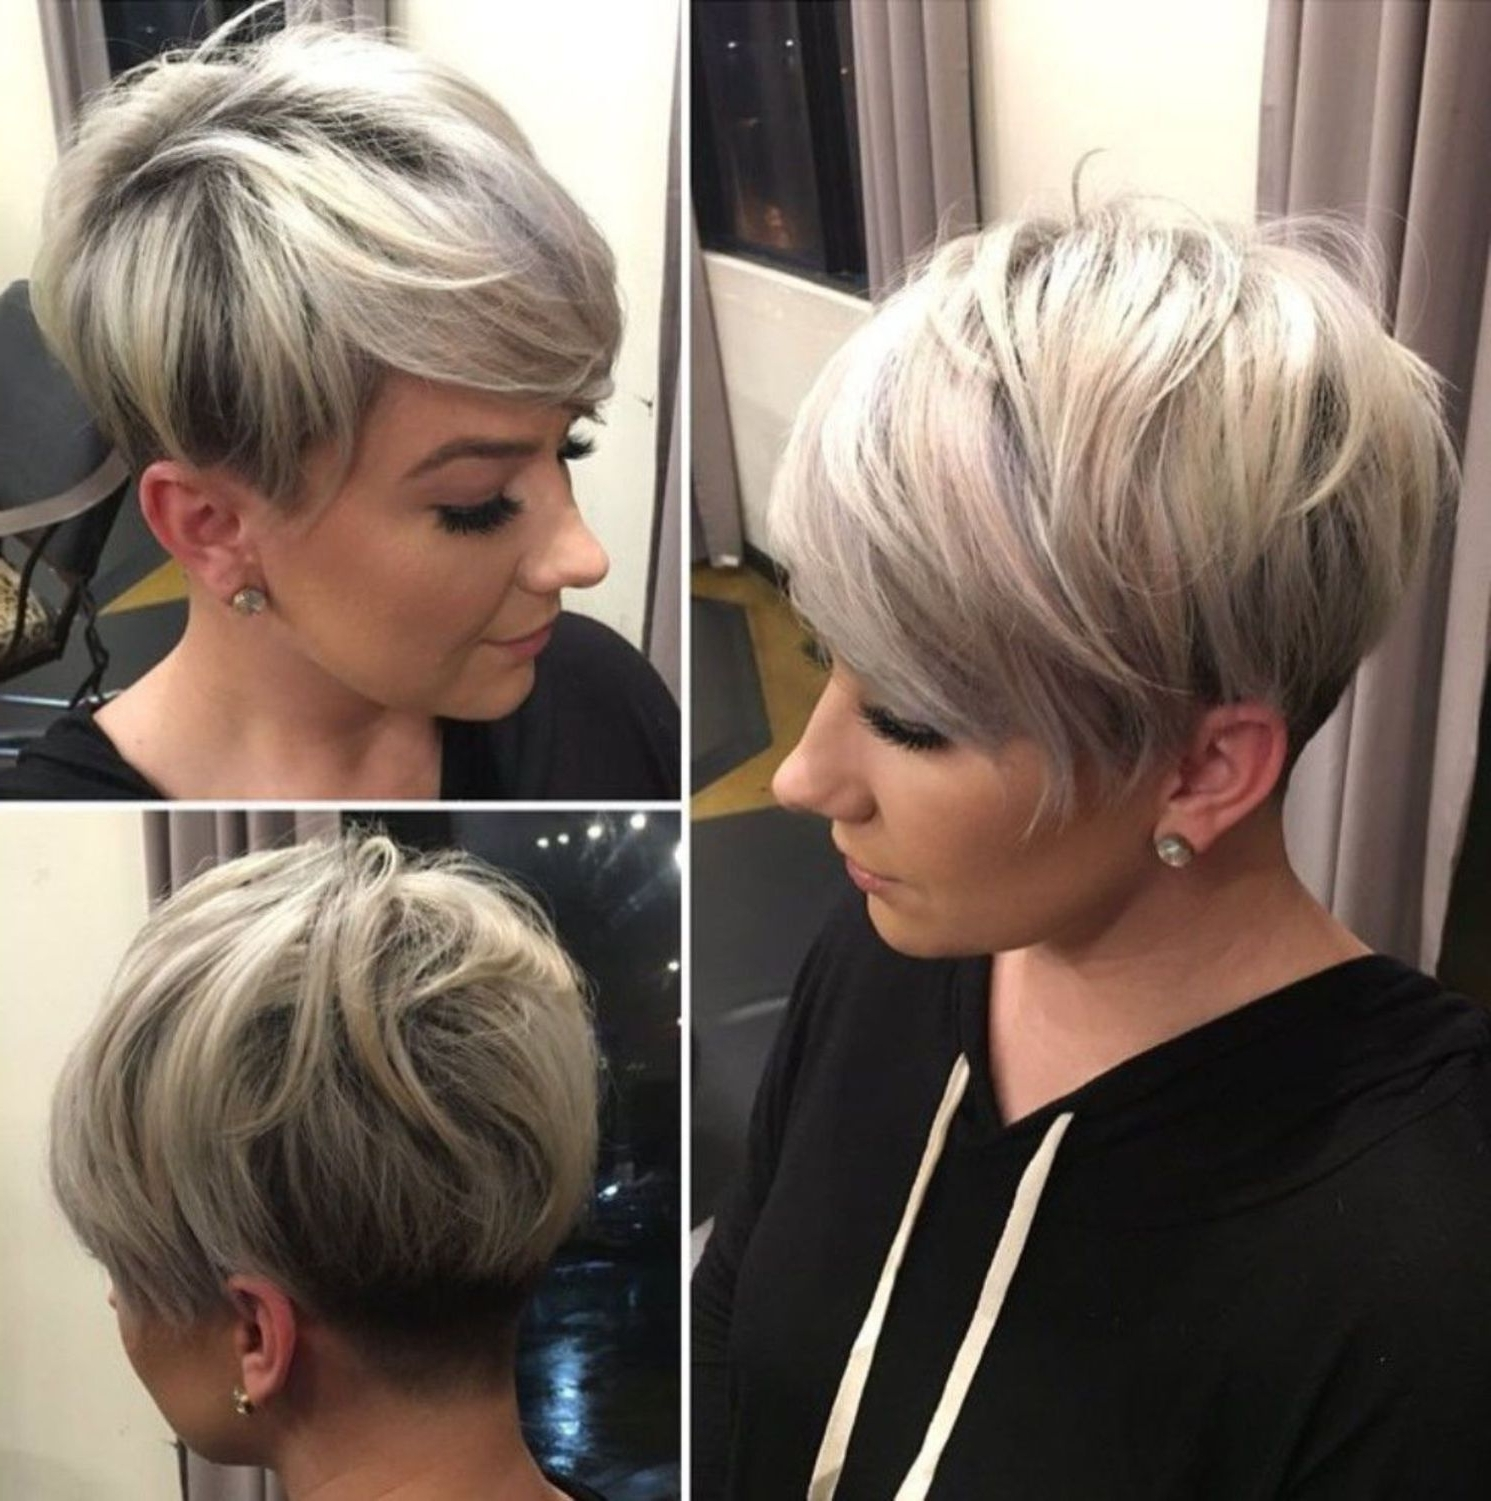 70 Short Shaggy, Spiky, Edgy Pixie Cuts And Hairstyles | Pinterest For 2018 Sassy Undercut Pixie With Bangs (Gallery 2 of 15)